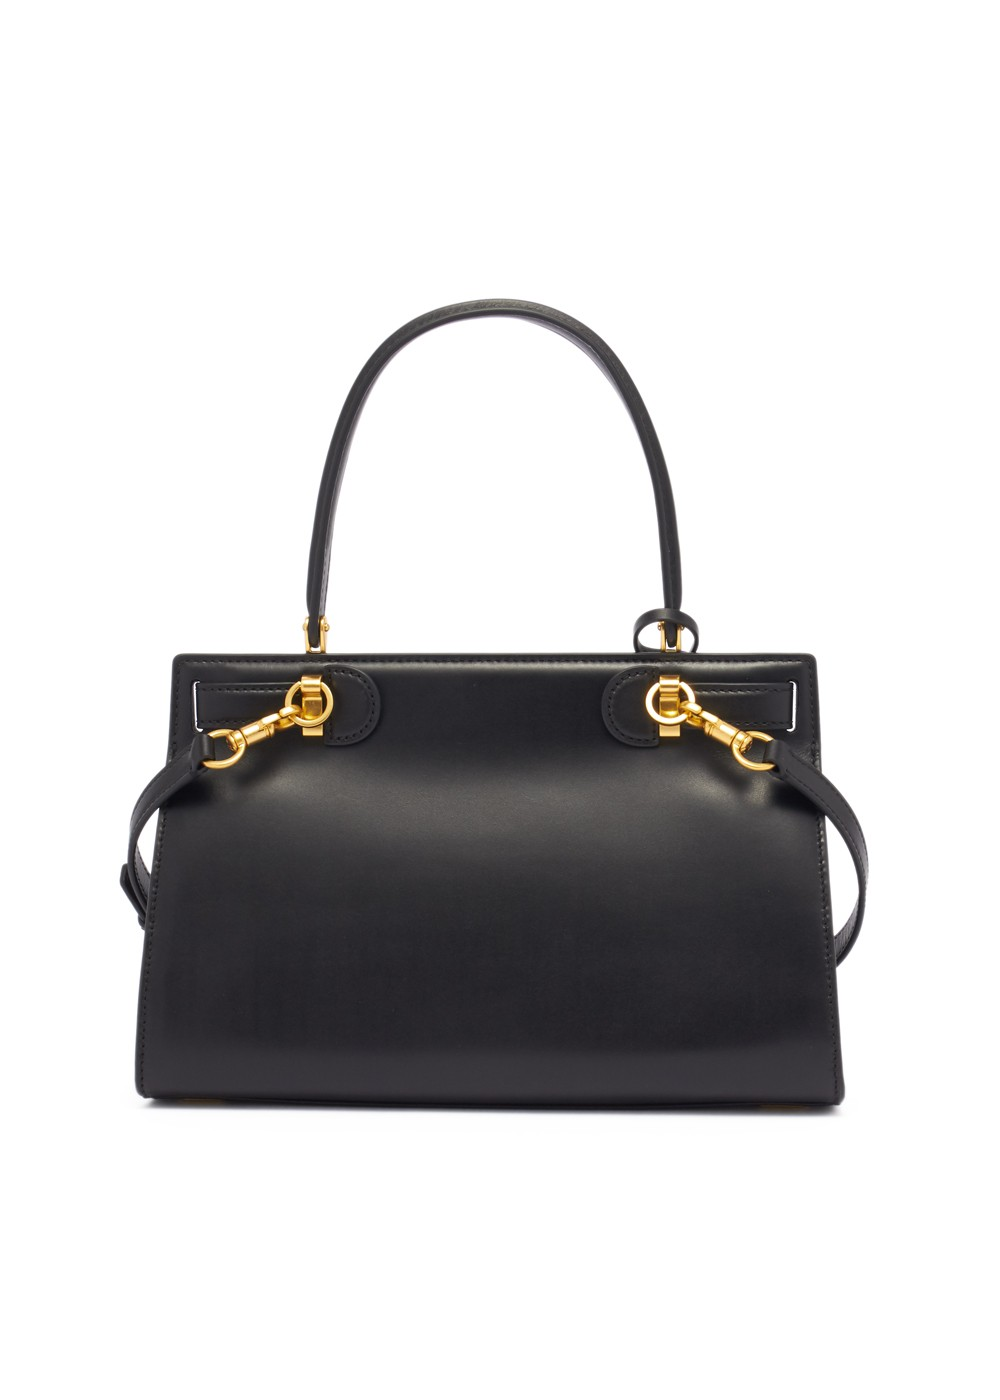 【最大47%OFF】LEE RADZIWILL SMALL SATCHEL|BLACK|ハンドバッグ|Tory Burch